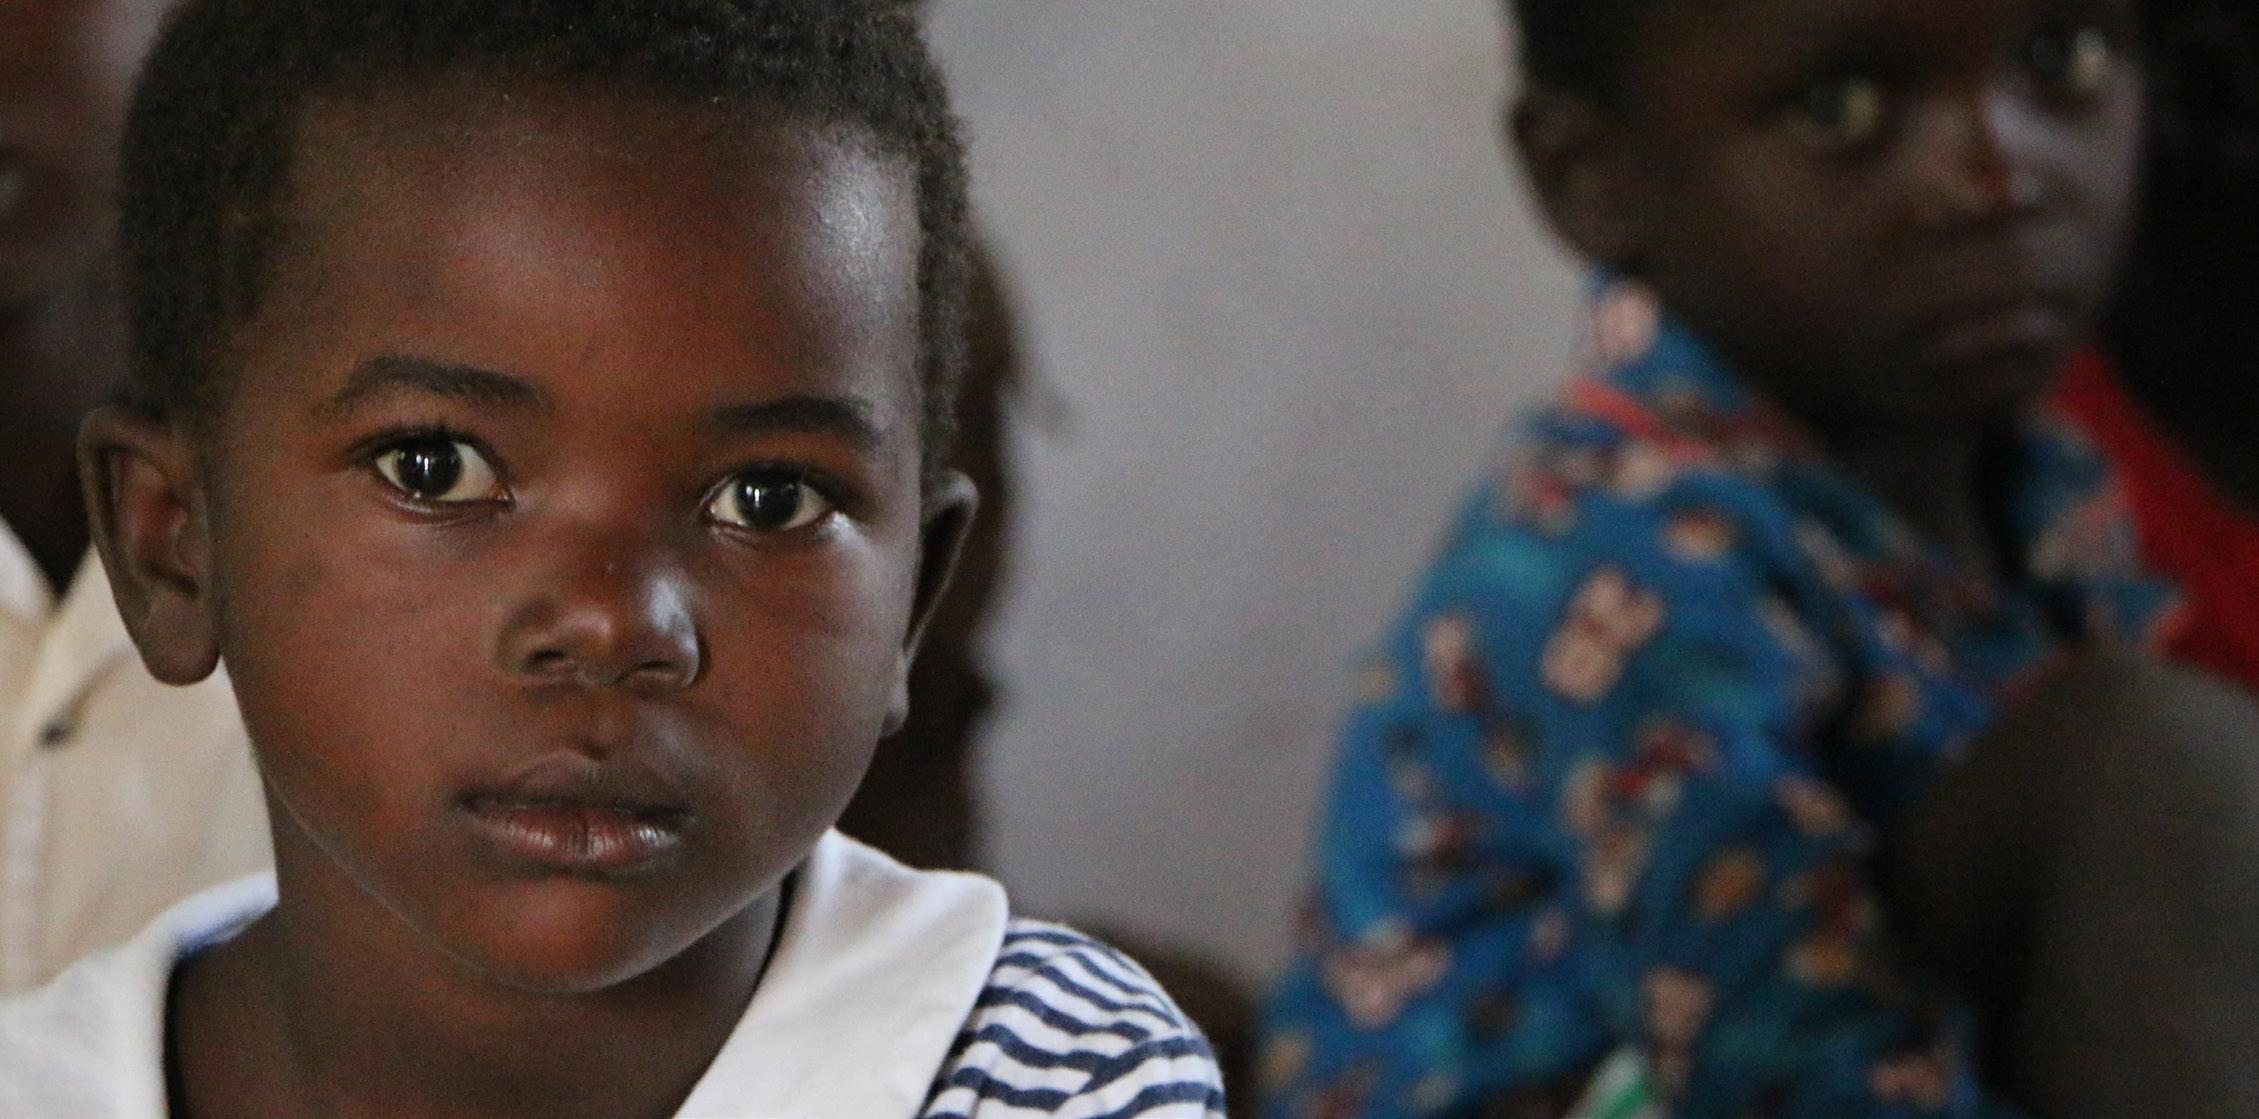 The plight of children in Malawi